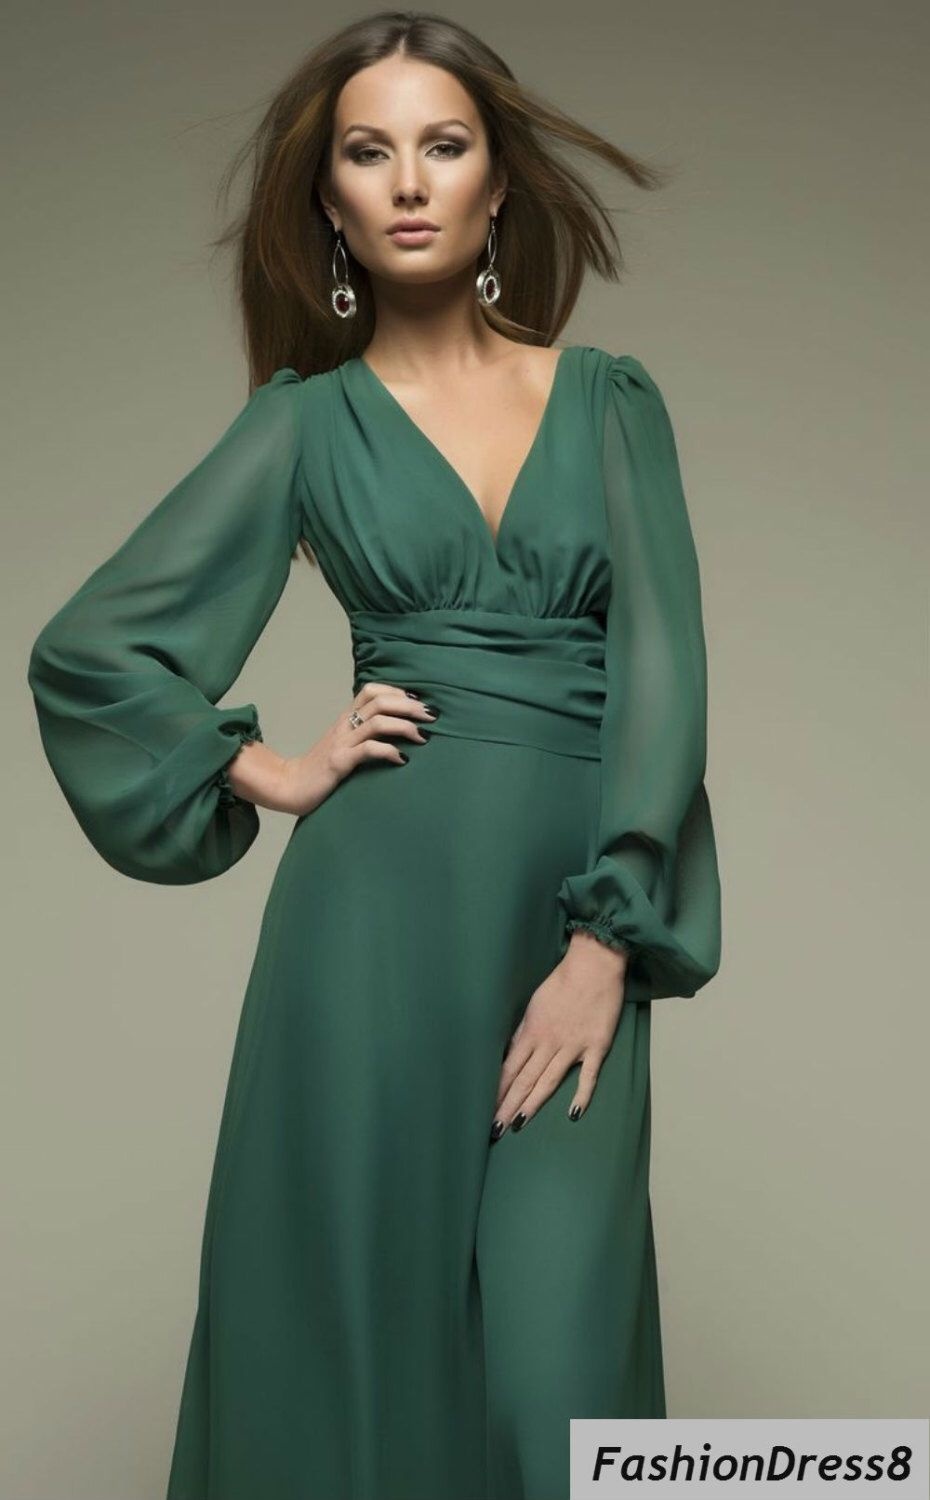 Green maxi dressformal chiffon dressoccasion dress summer by